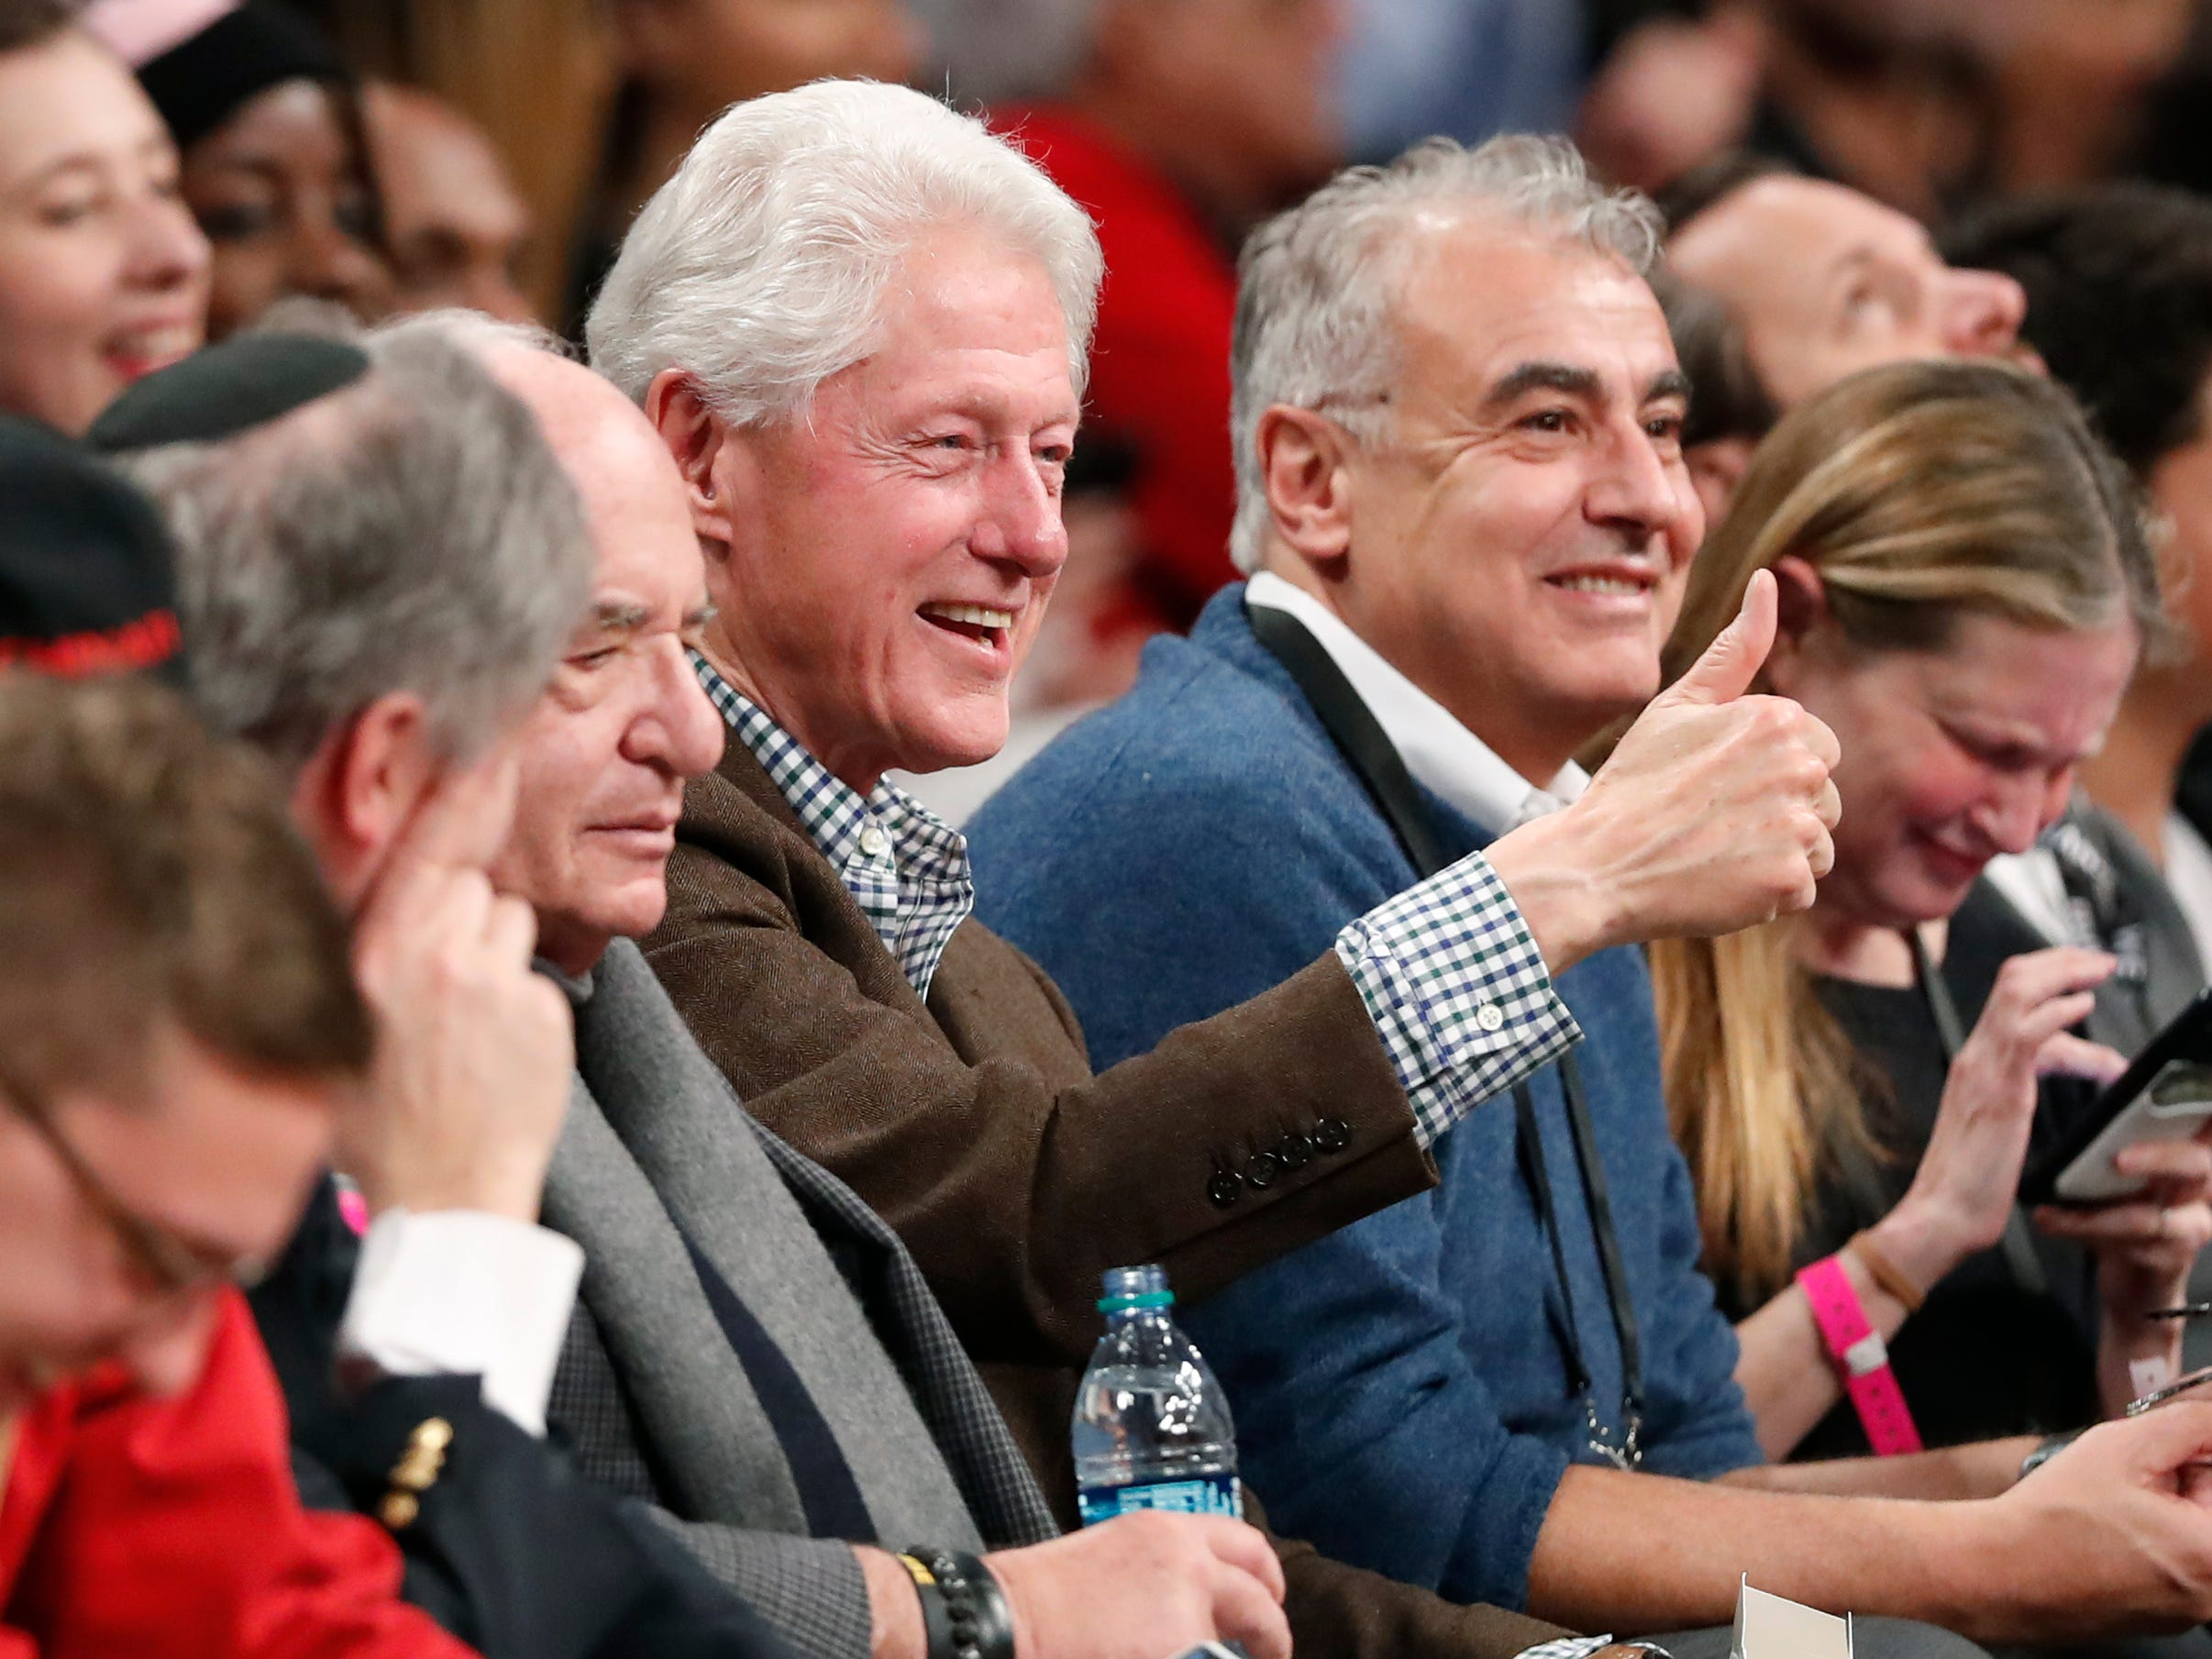 Former President Bill Clinton shoots someone a thumbs up as he sits courtside with Marc Lasry, one of the Bucks' principal owners, during Milwaukee's game against the Nets on Monday night in Brooklyn.